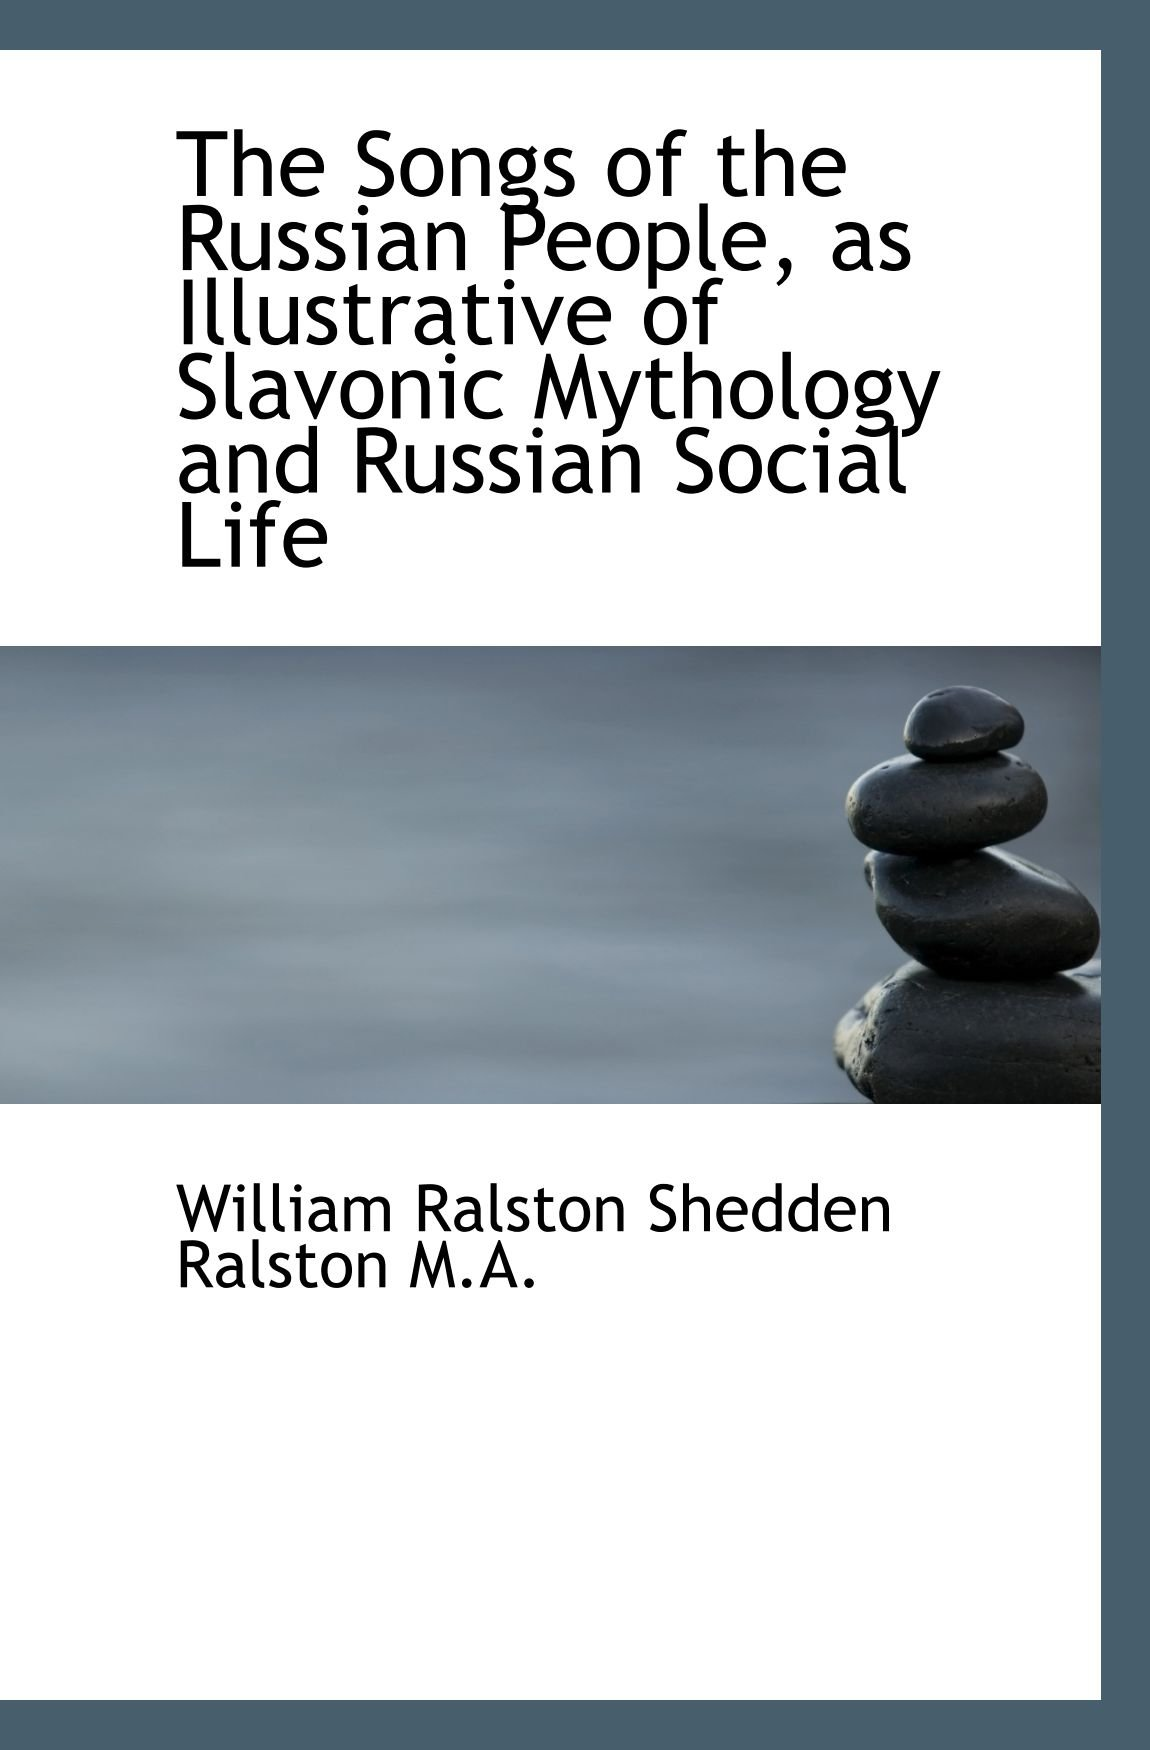 The Songs of the Russian People, as Illustrative of Slavonic Mythology and Russian Social Life pdf